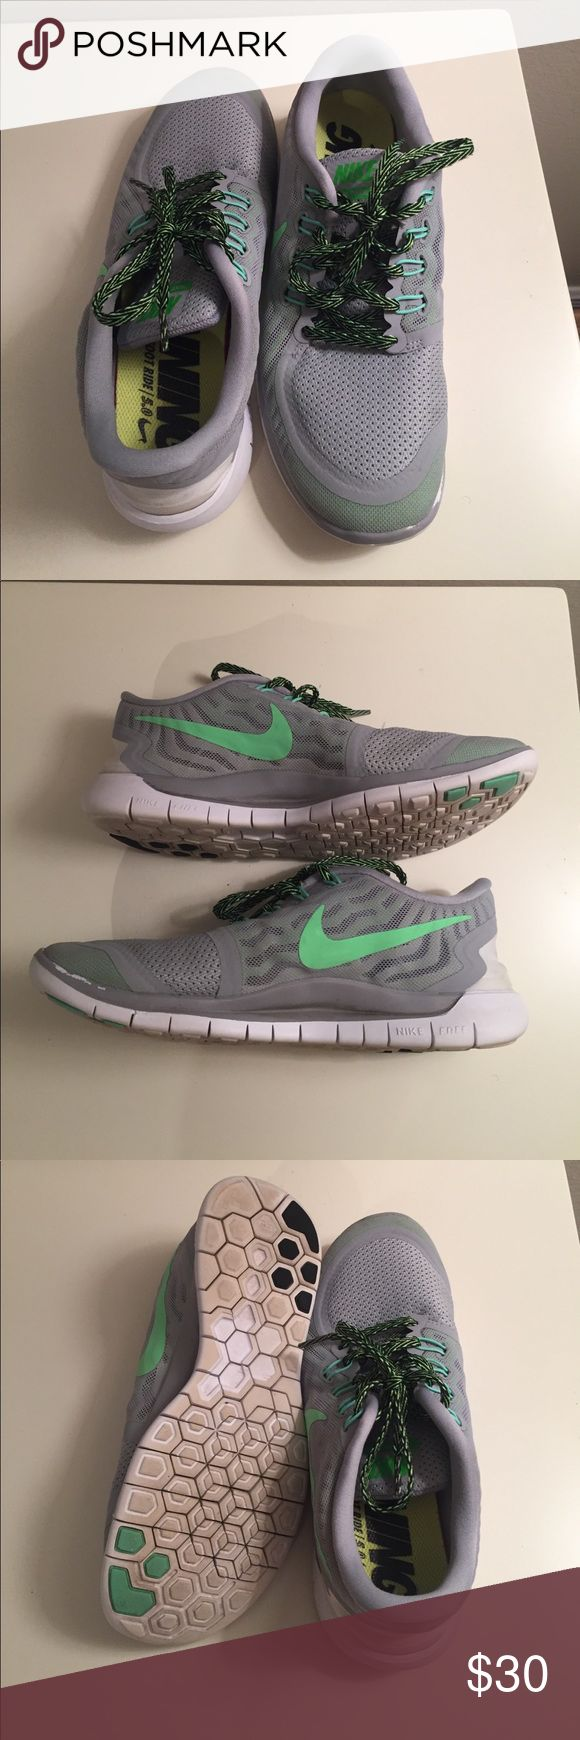 Nike Free Barefoot Vs OnlineMagasiner Trainers Merrell CoWrdBxe